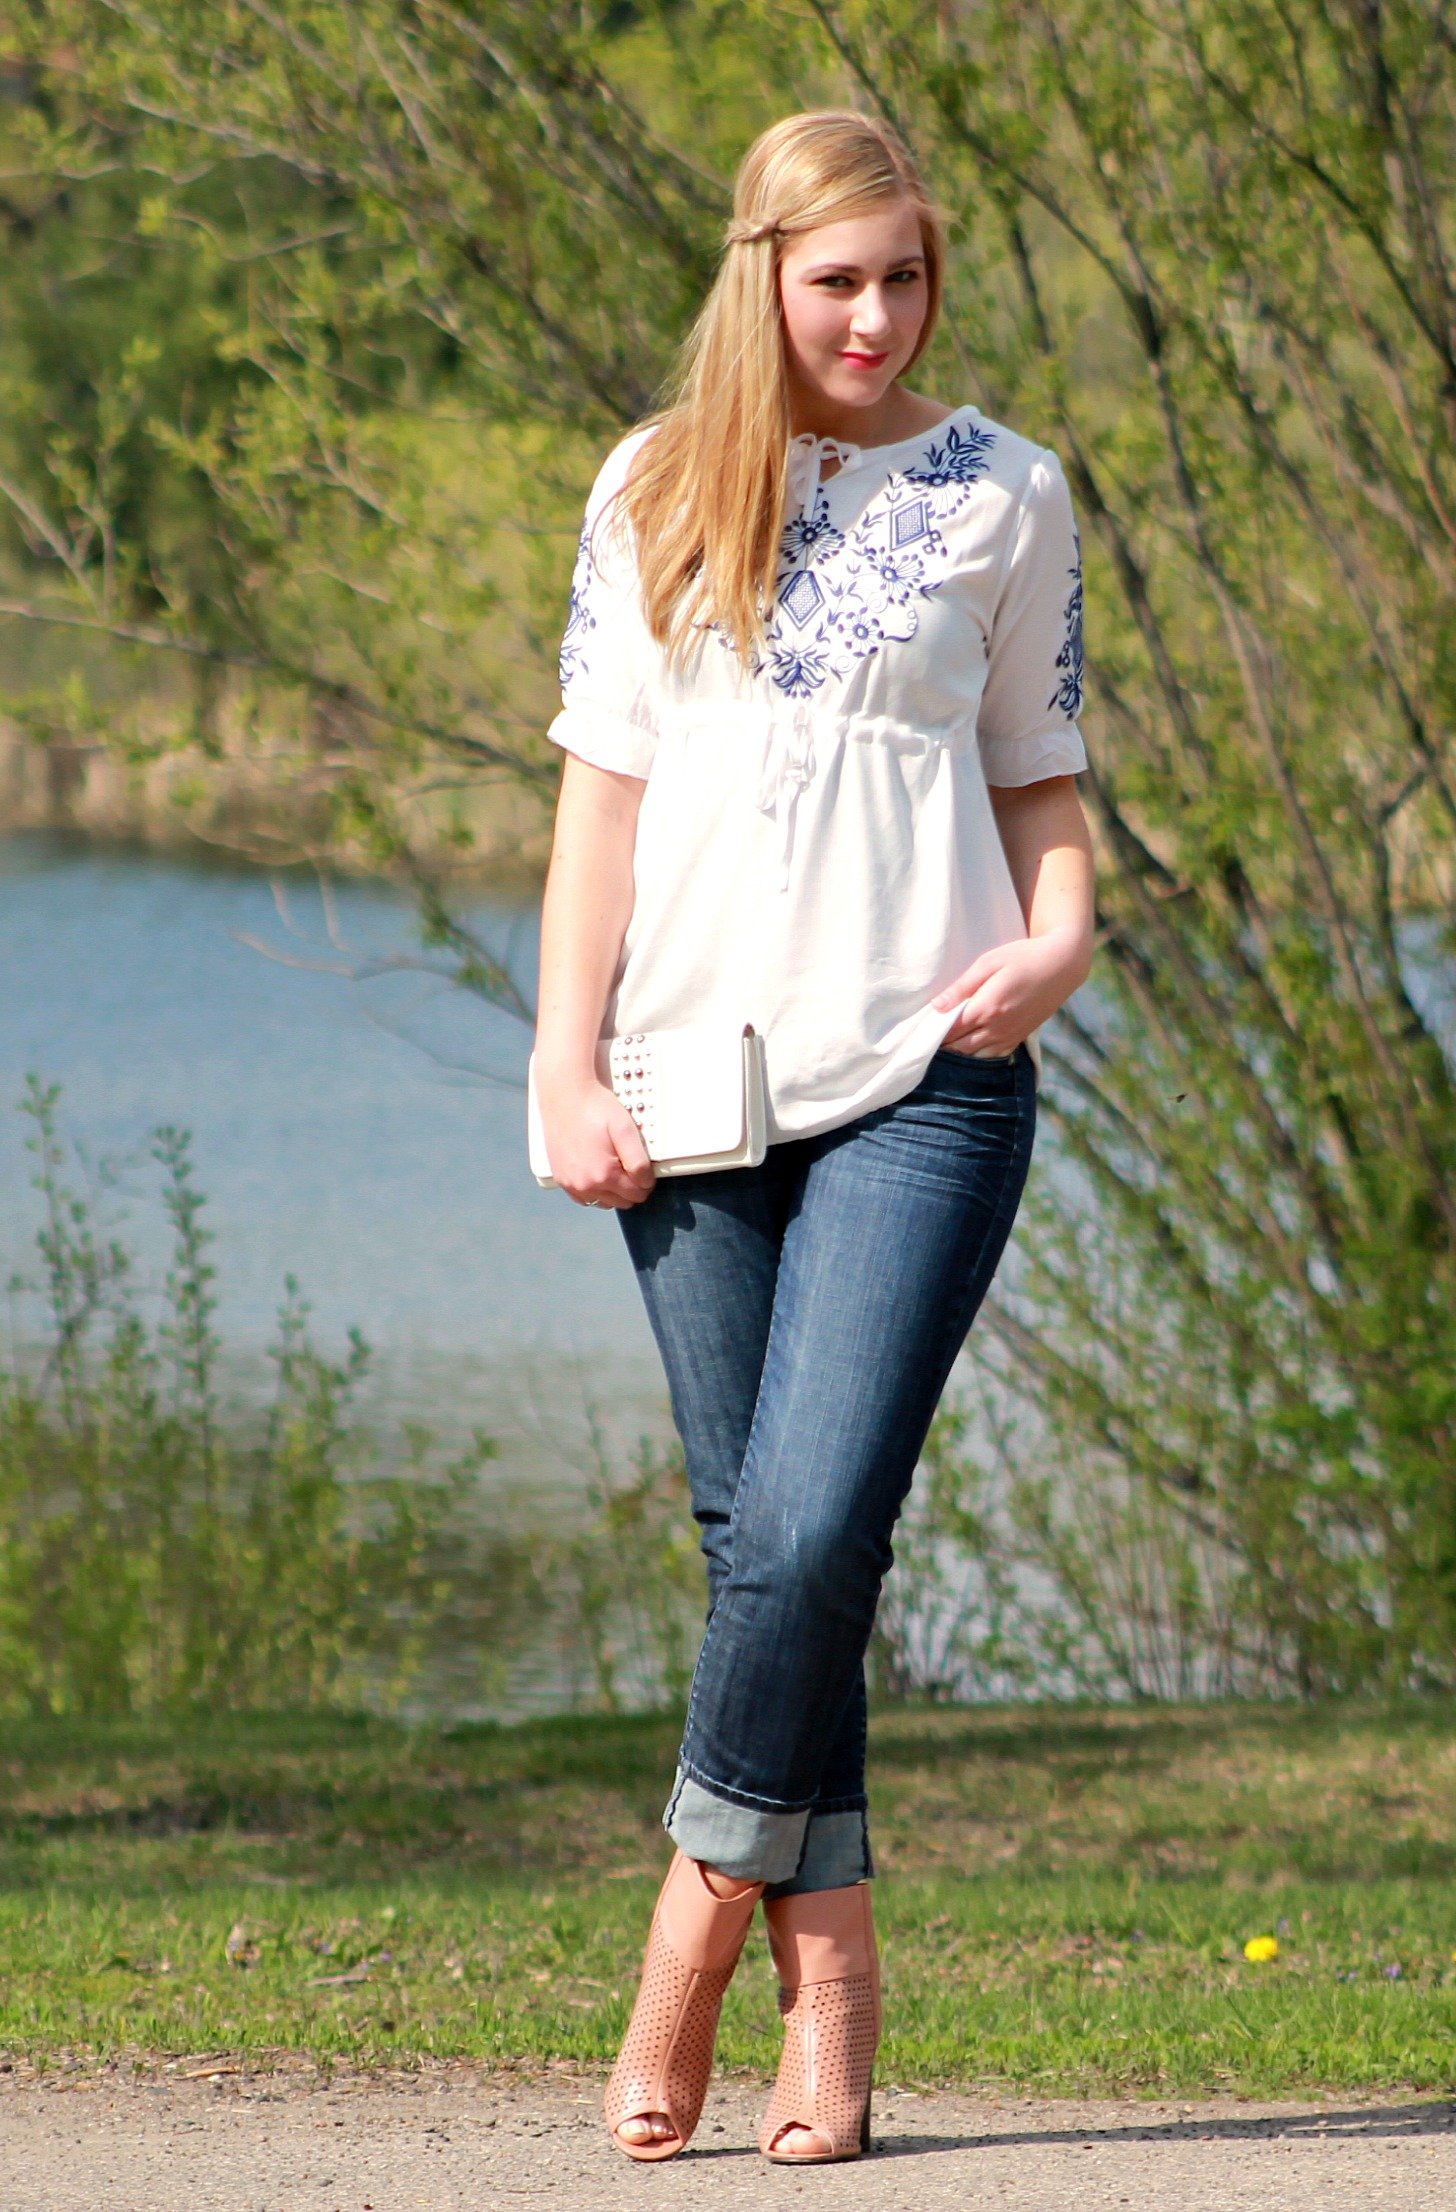 White Top + Cuffed Jeans + Open Toe Booties